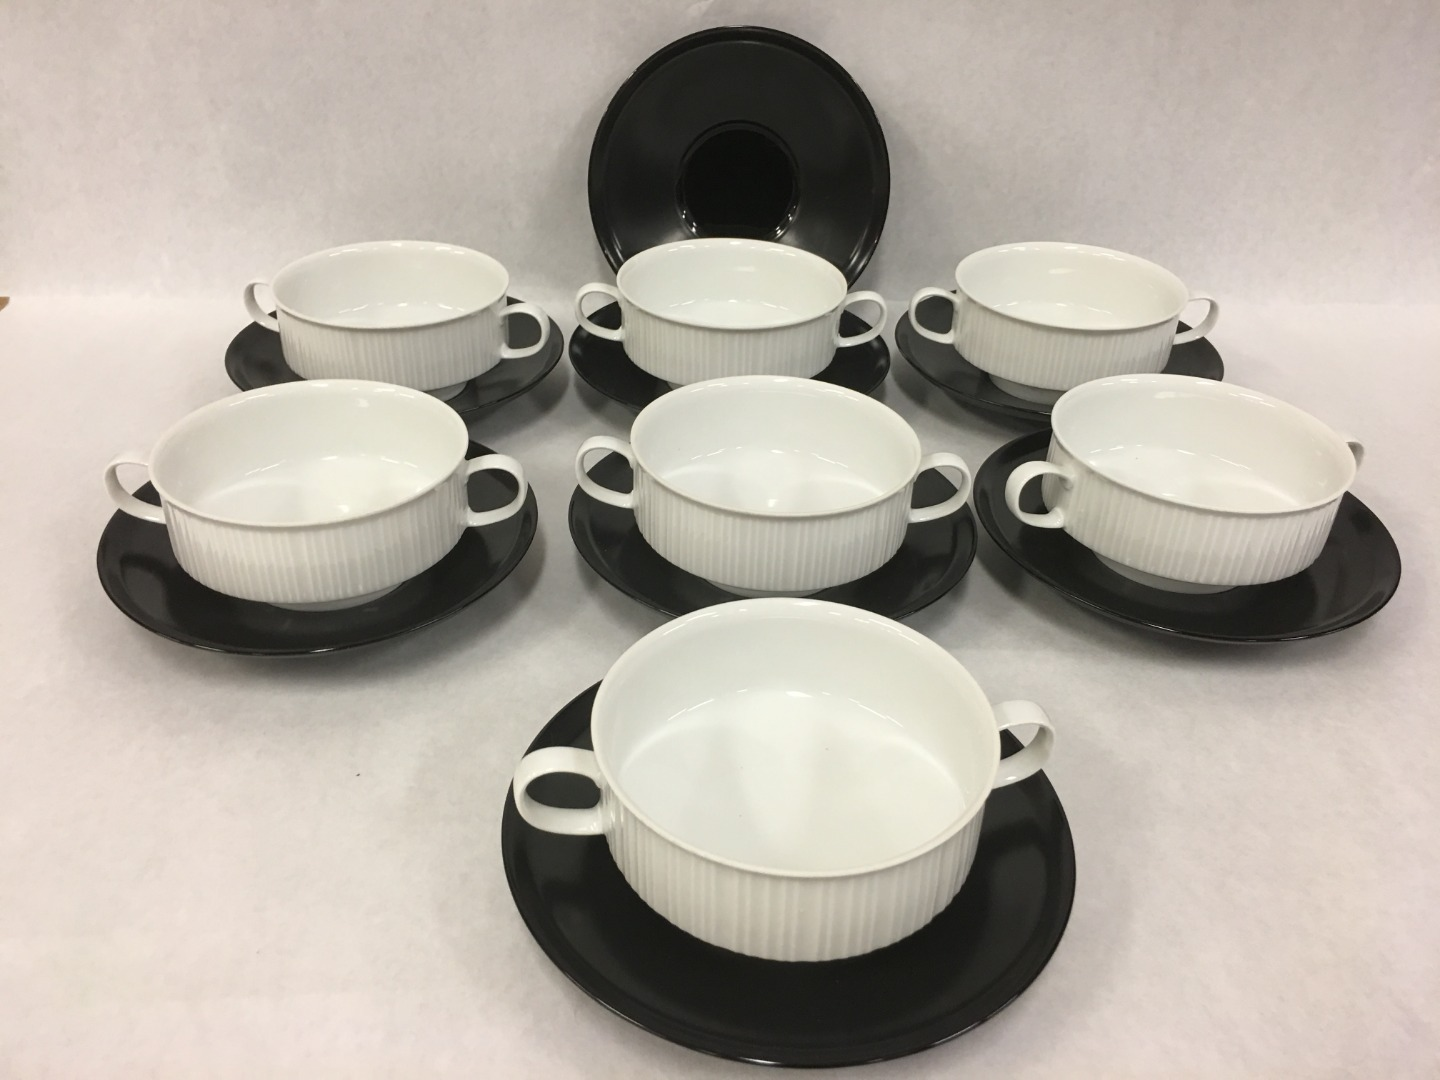 Primary image for Set of 7 Footed Cream Soup Bowl & Saucer Set Variations ROSENTHAL CONTINENTAL